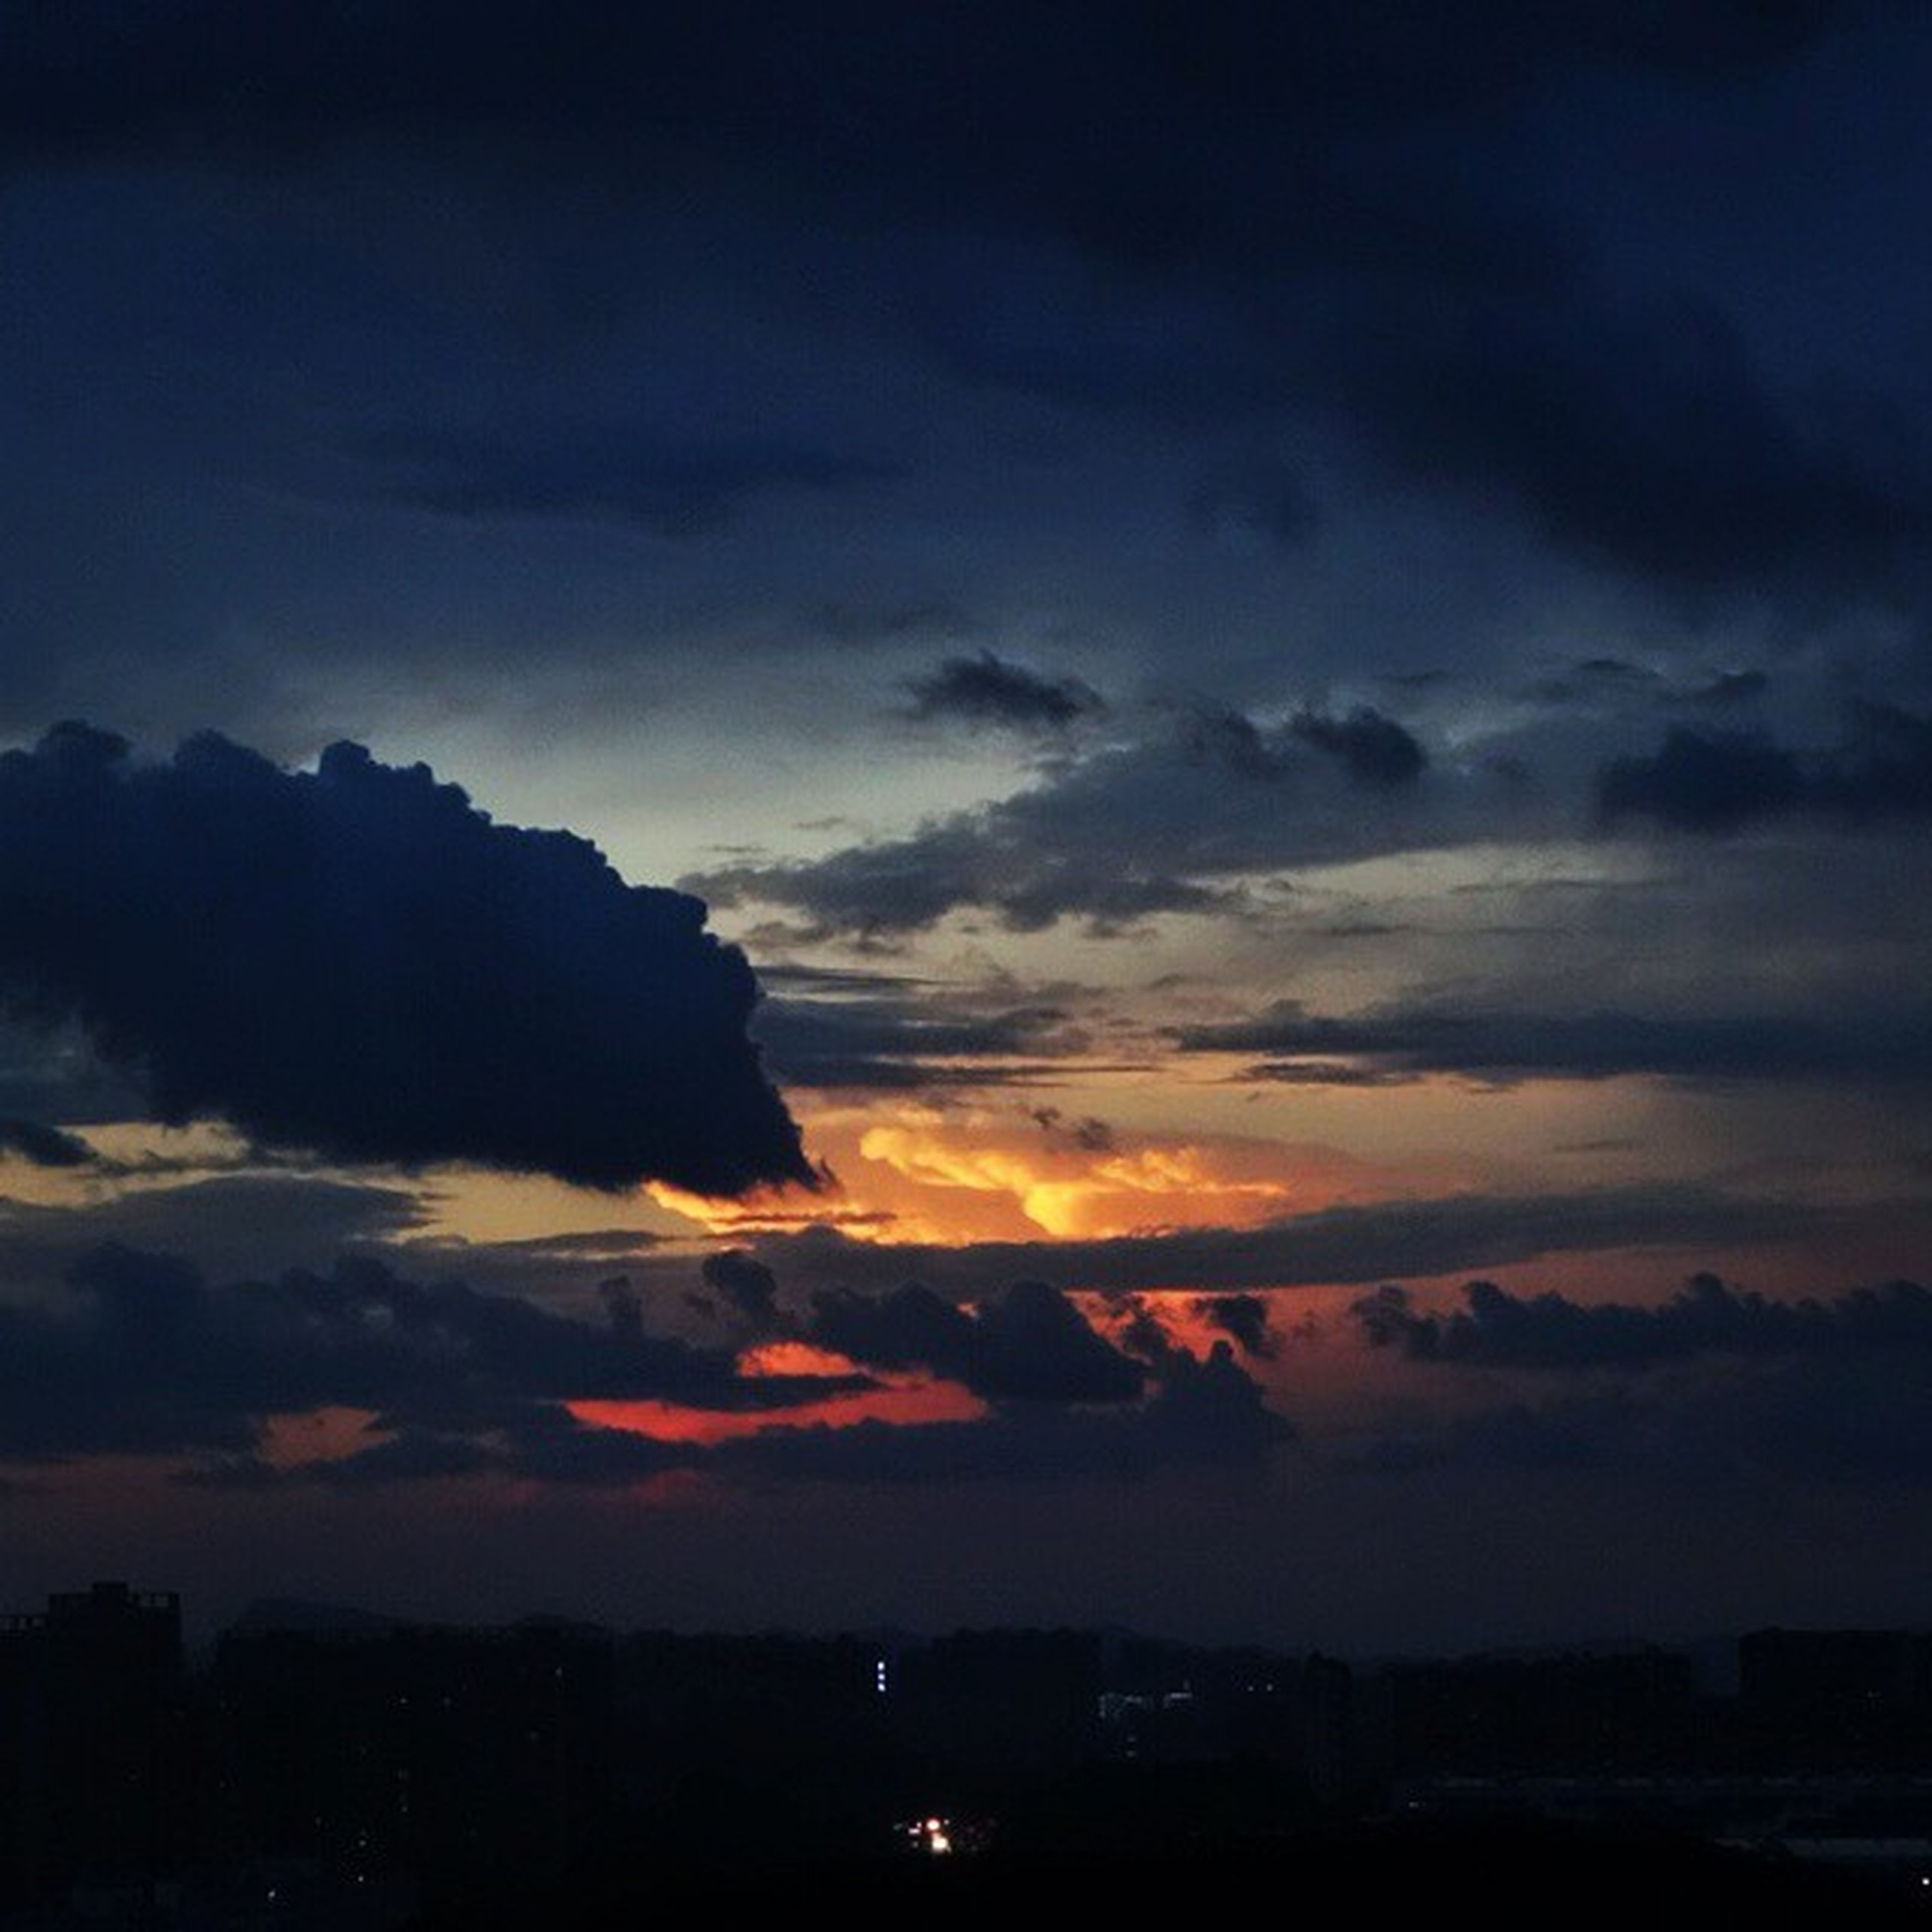 sunset, sky, cloud - sky, silhouette, scenics, beauty in nature, dramatic sky, cloudy, orange color, tranquil scene, nature, tranquility, cloud, weather, atmospheric mood, dusk, idyllic, cloudscape, outdoors, moody sky